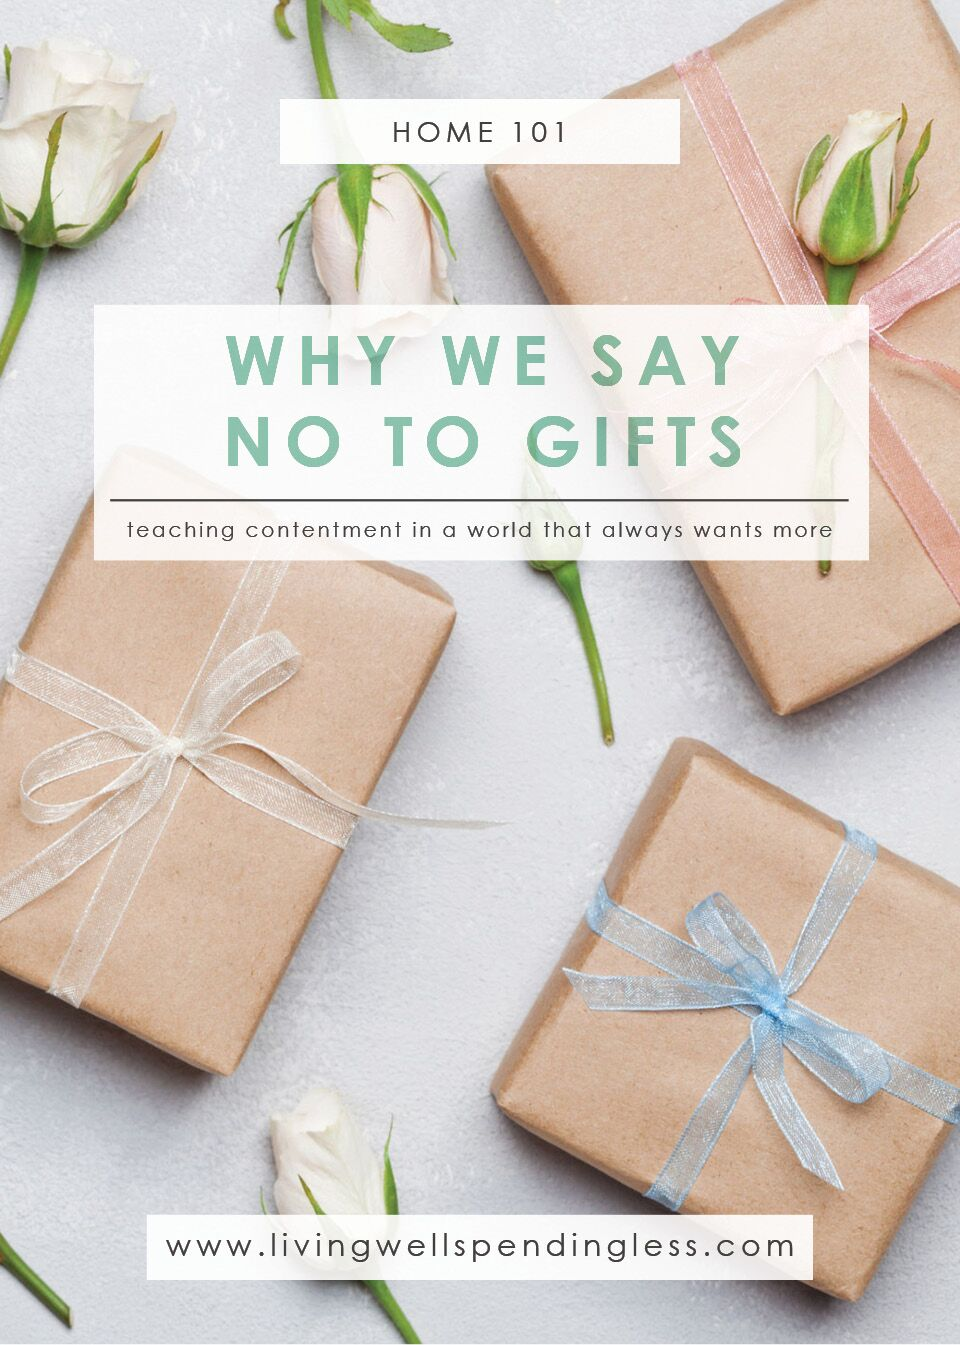 Why We Say NO to Gifts: Teaching Contentment in a World that Always Wants More